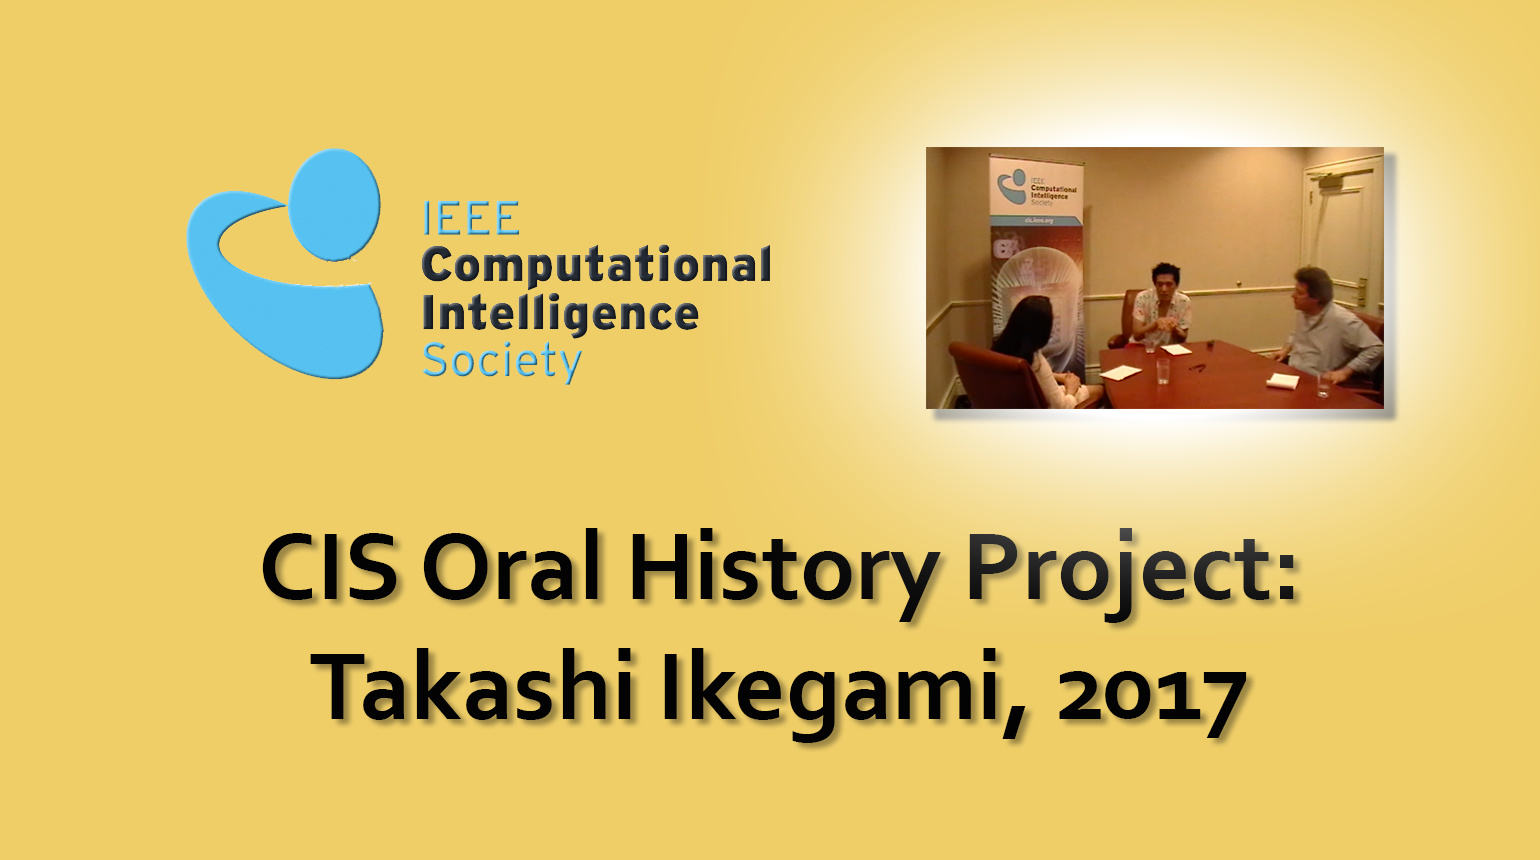 Interview with Takashi Ikegami, 2017: CIS Oral History Project